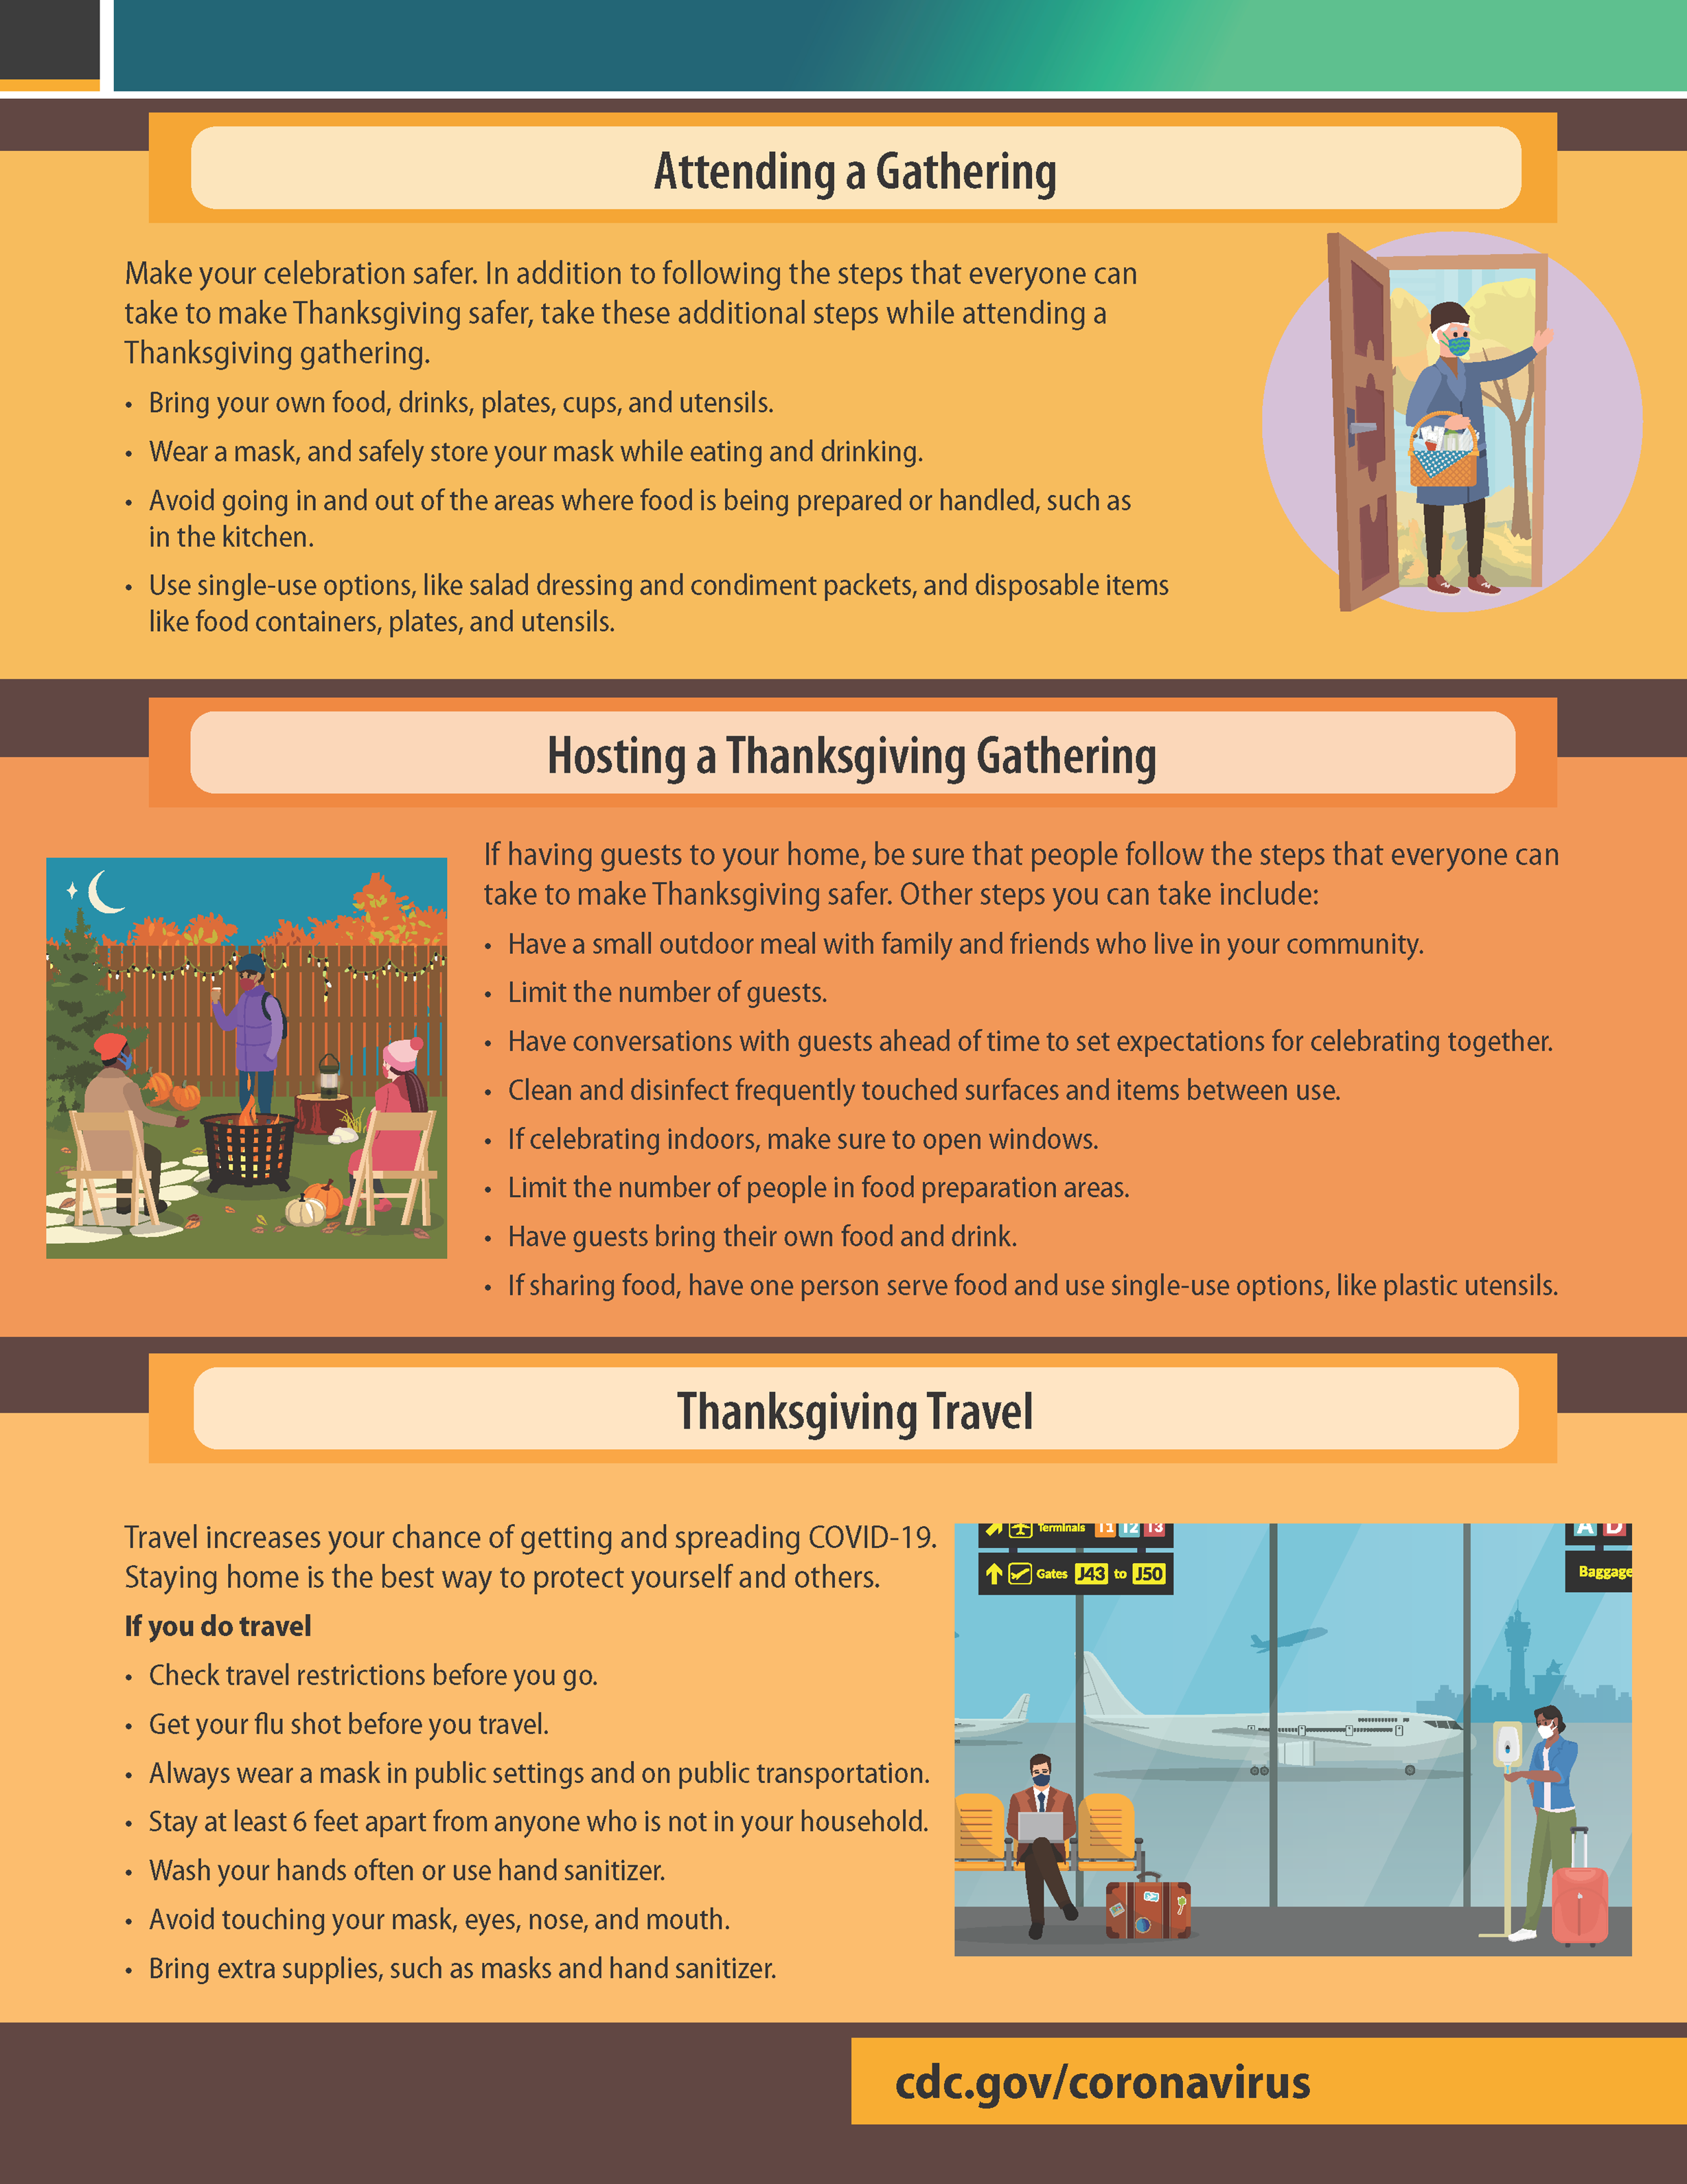 CDC Making Thanksgiving Safer 2 (Accessible Link below this image)